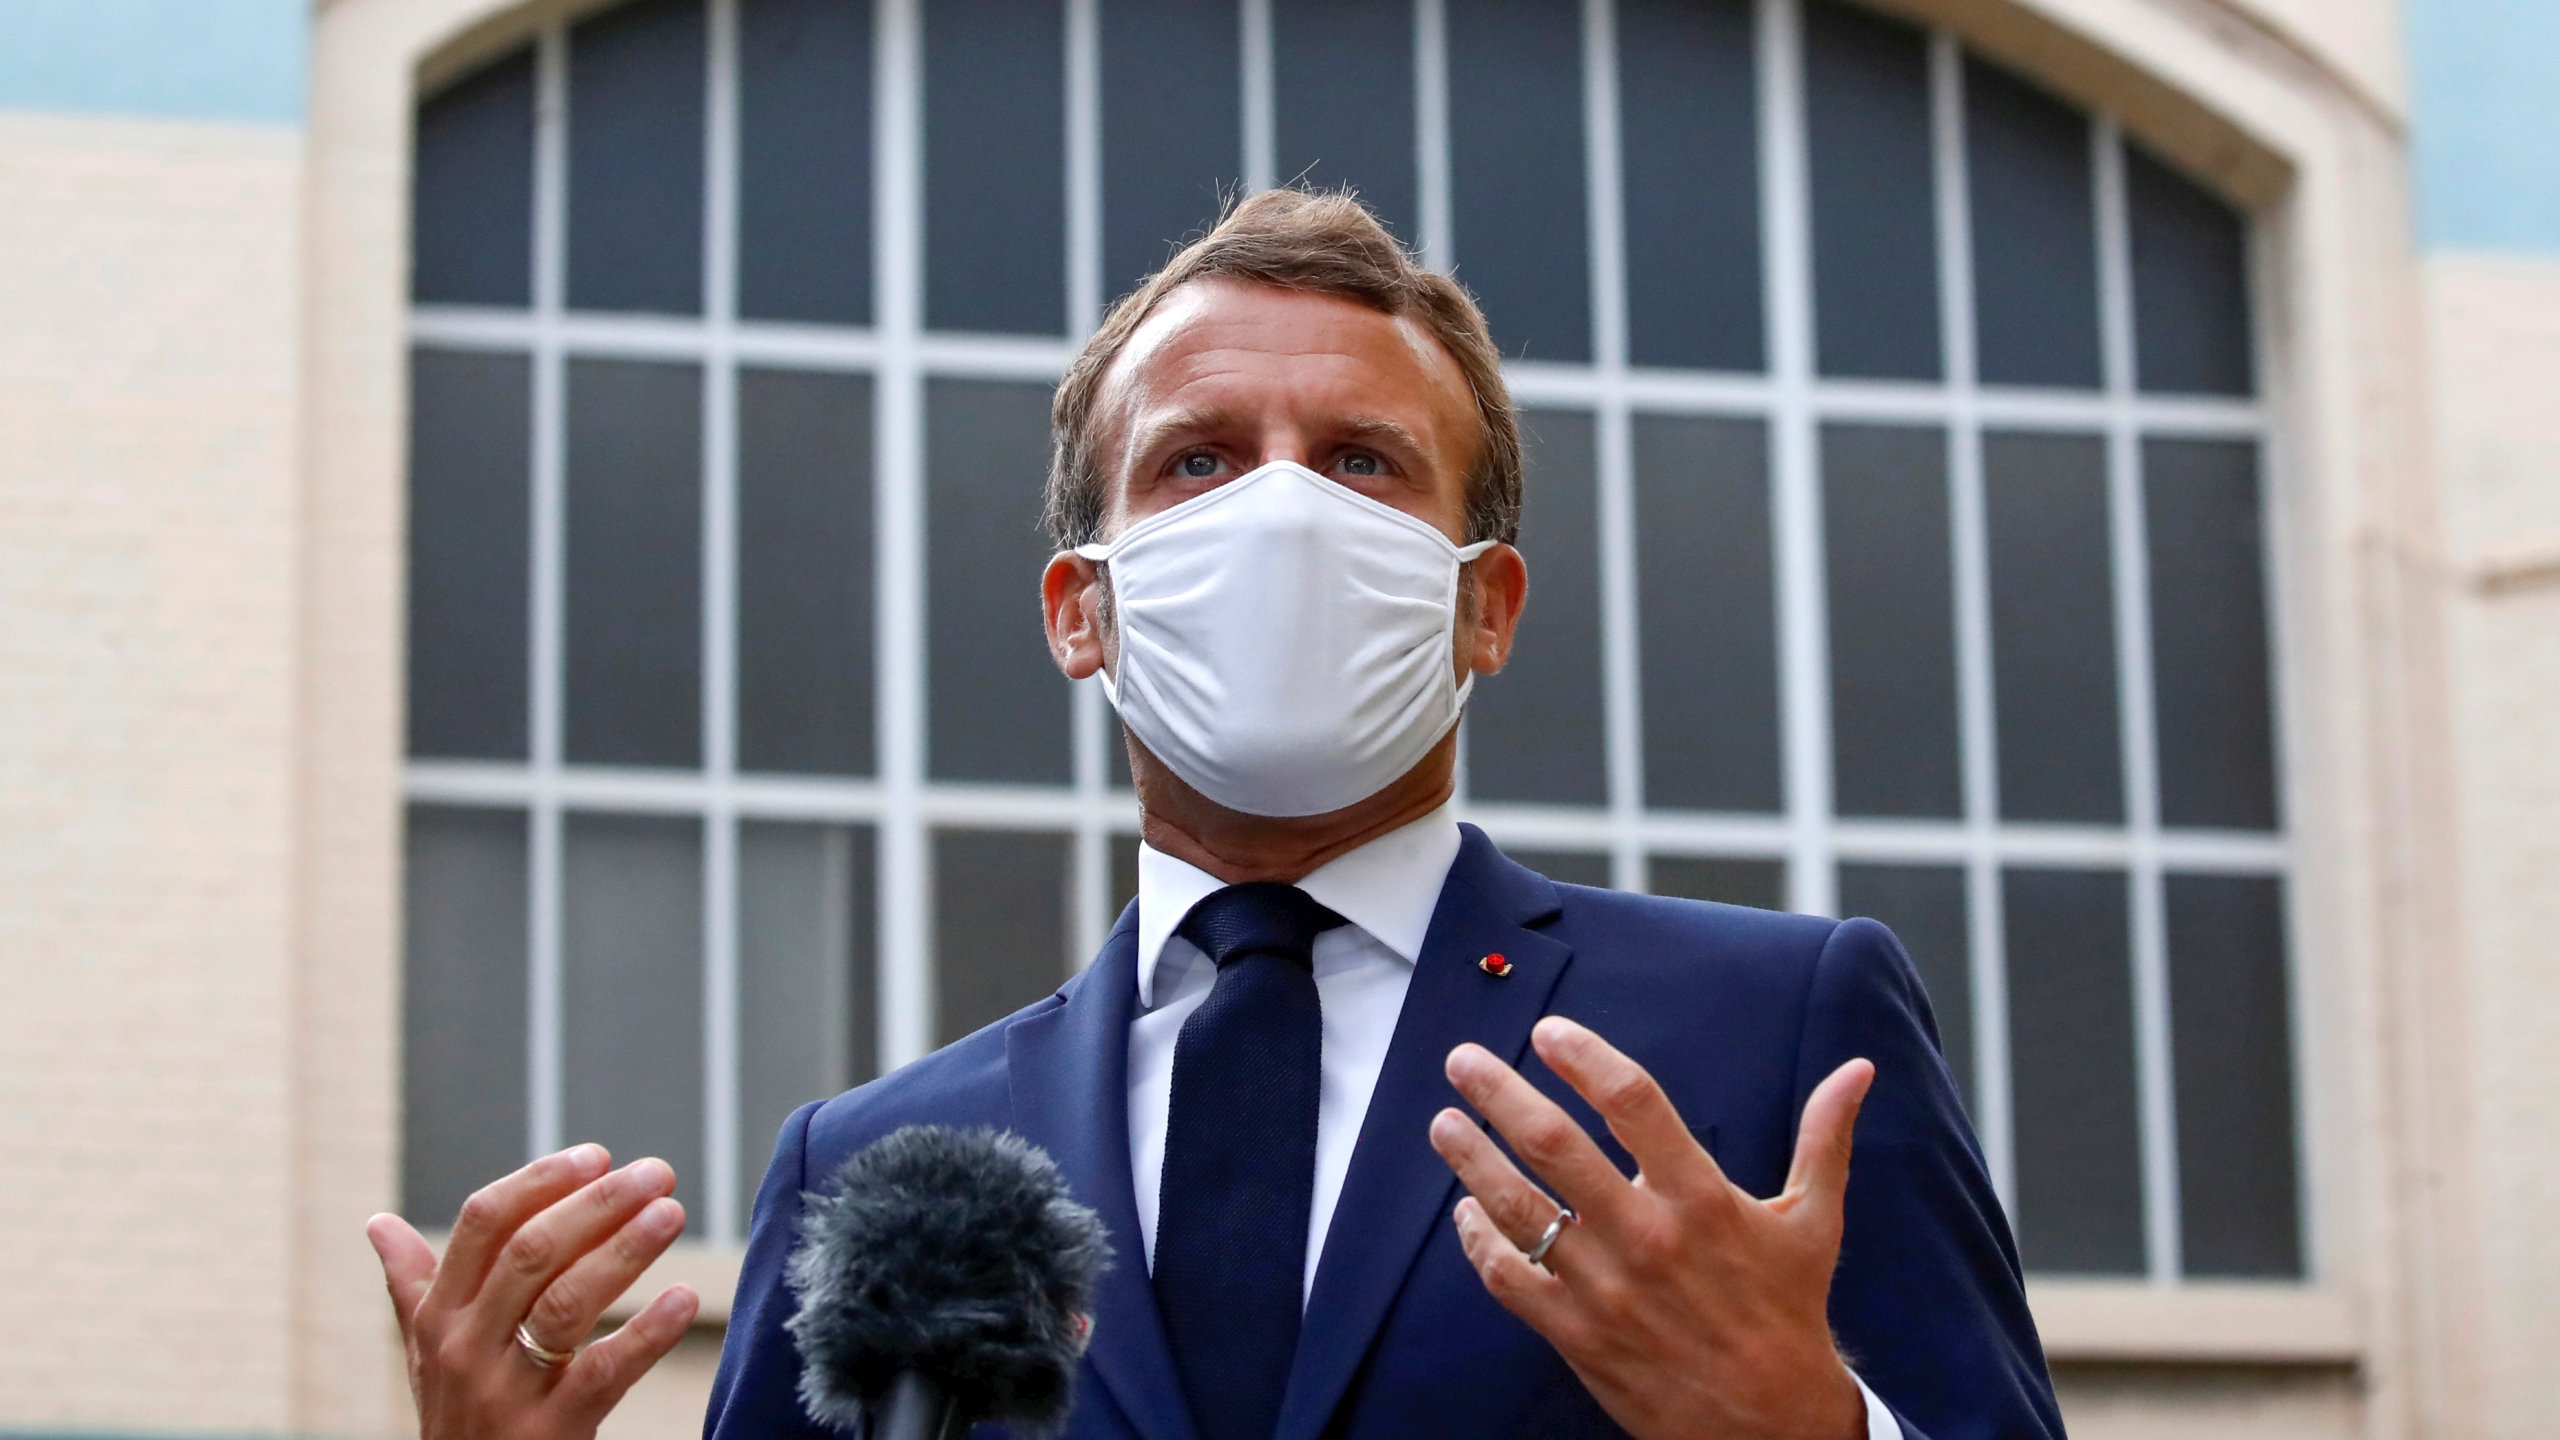 French President Emmanuel Macron visits a site of pharmaceutical group Seqens